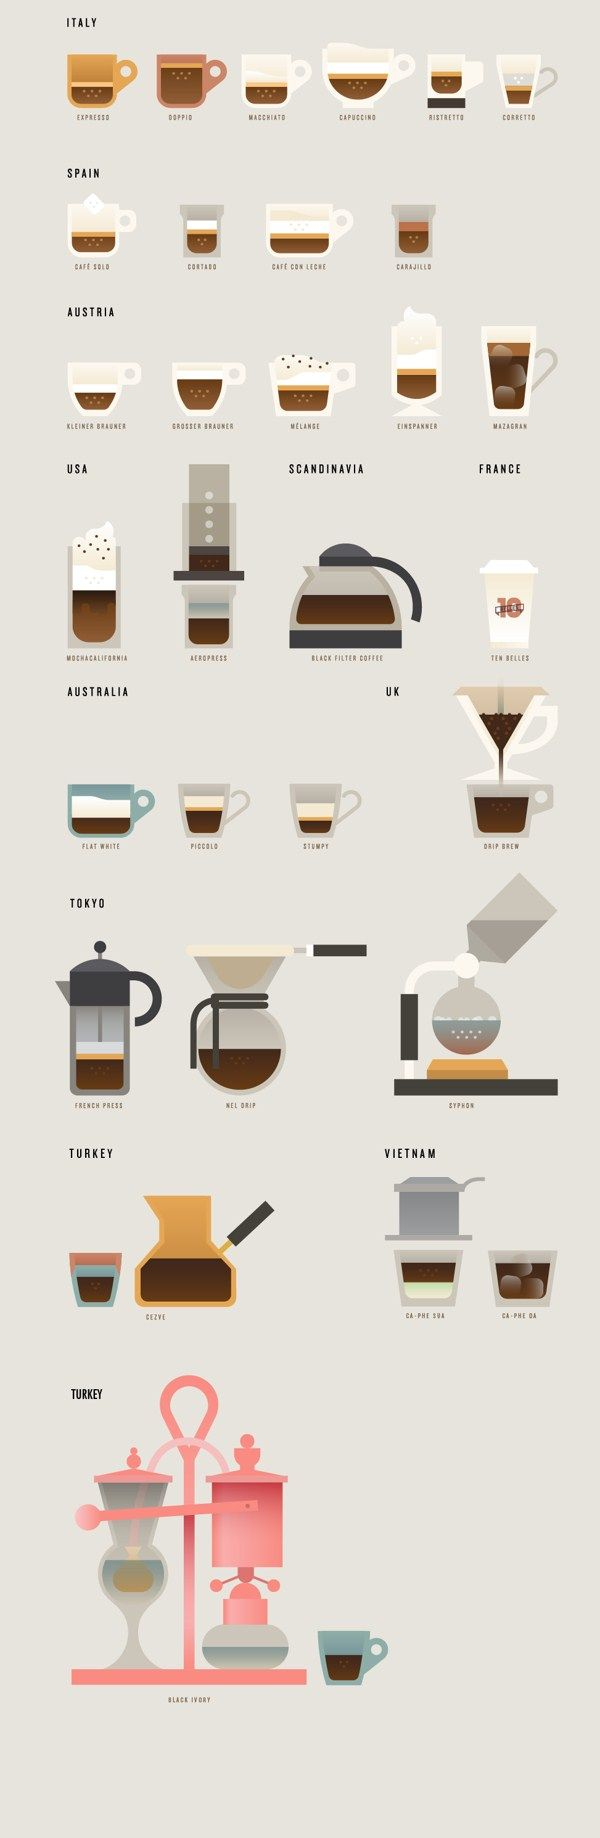 A great interactive #map that allows people to discover the many differences of #coffee culture around the #world - http://www.finedininglovers.com/blog/food-drinks/interactive-map-coffee/